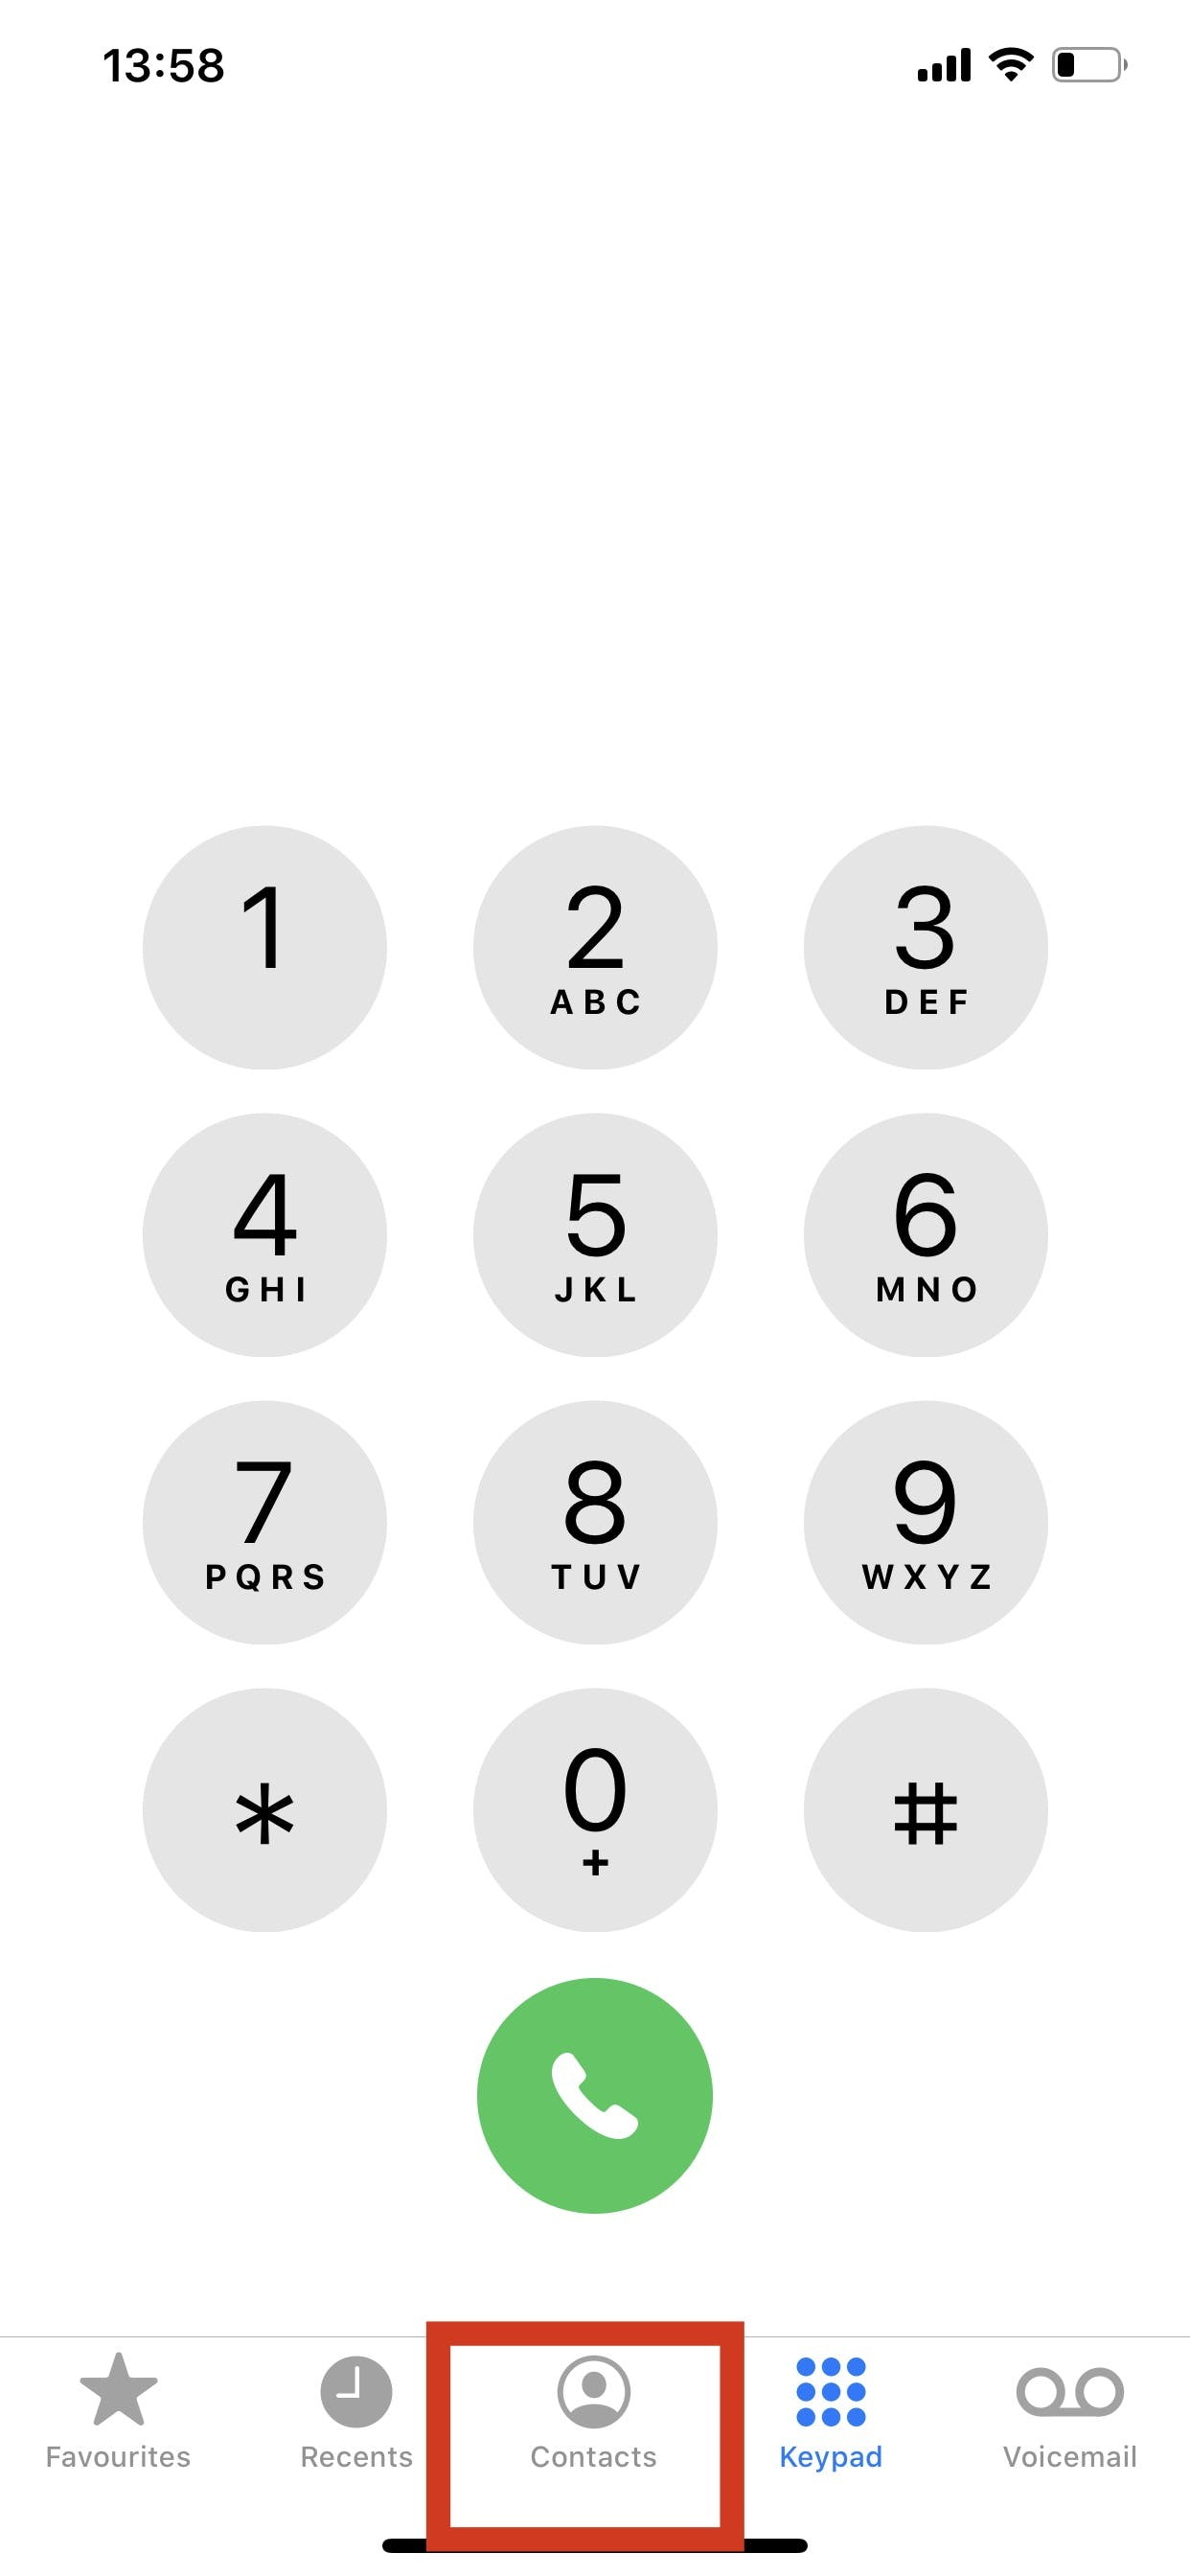 How to block a number from calling on your iPhone